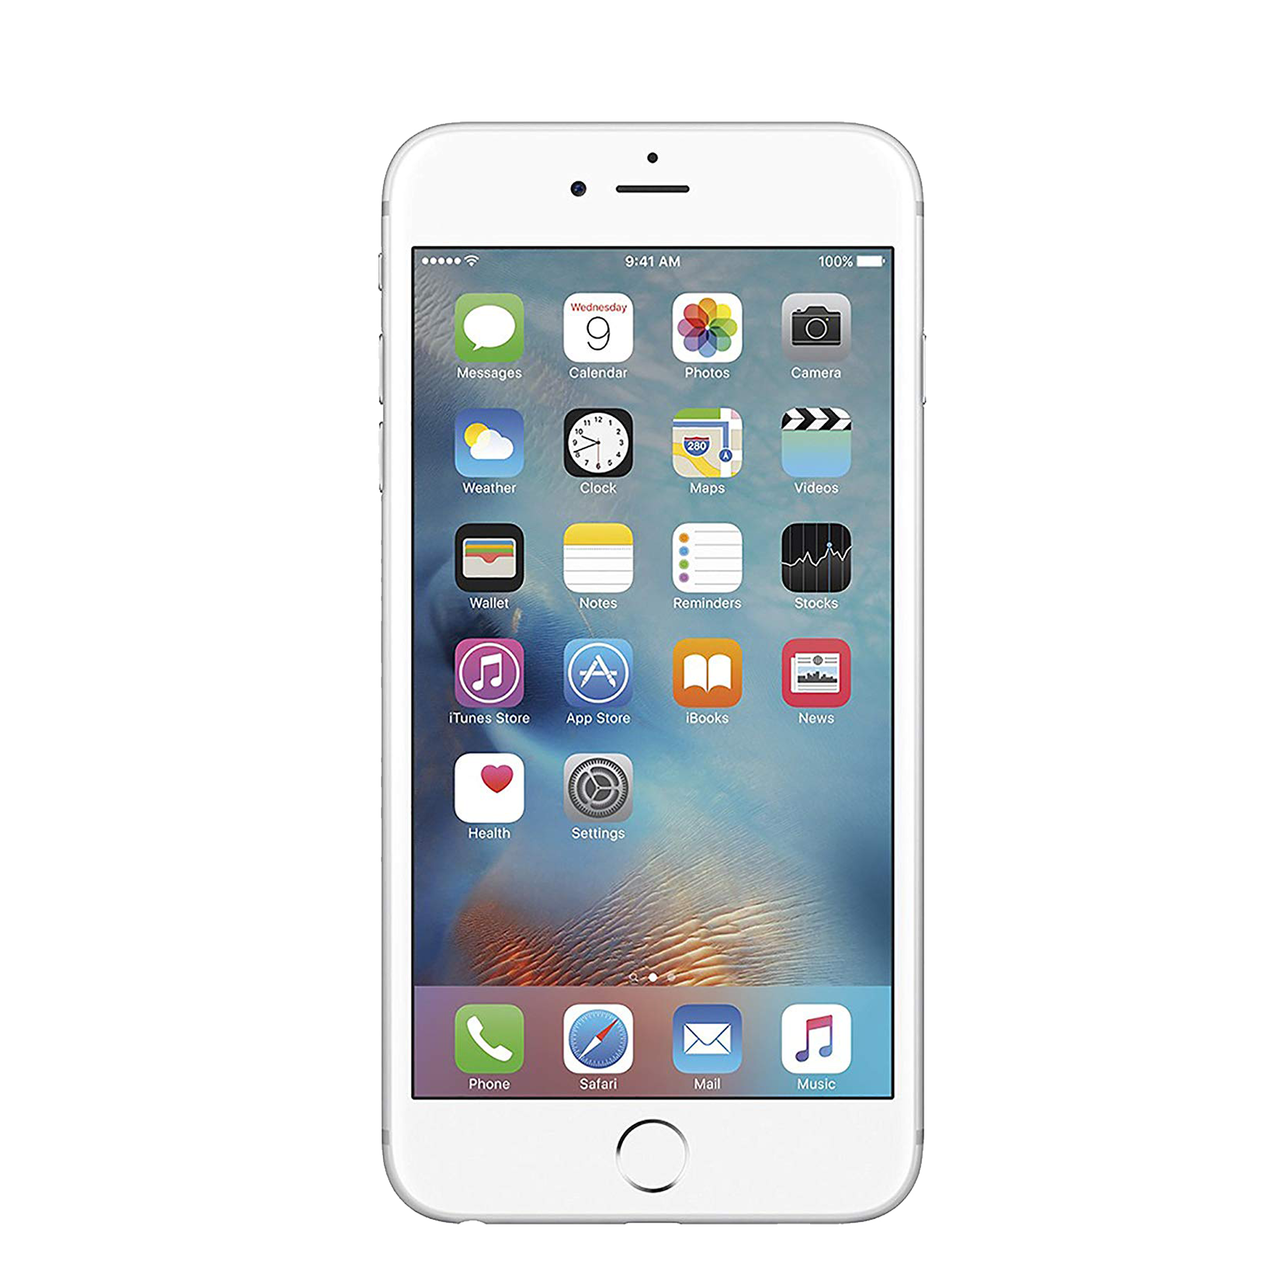 iphone-6plus-thumbnail-75-percent.jpg